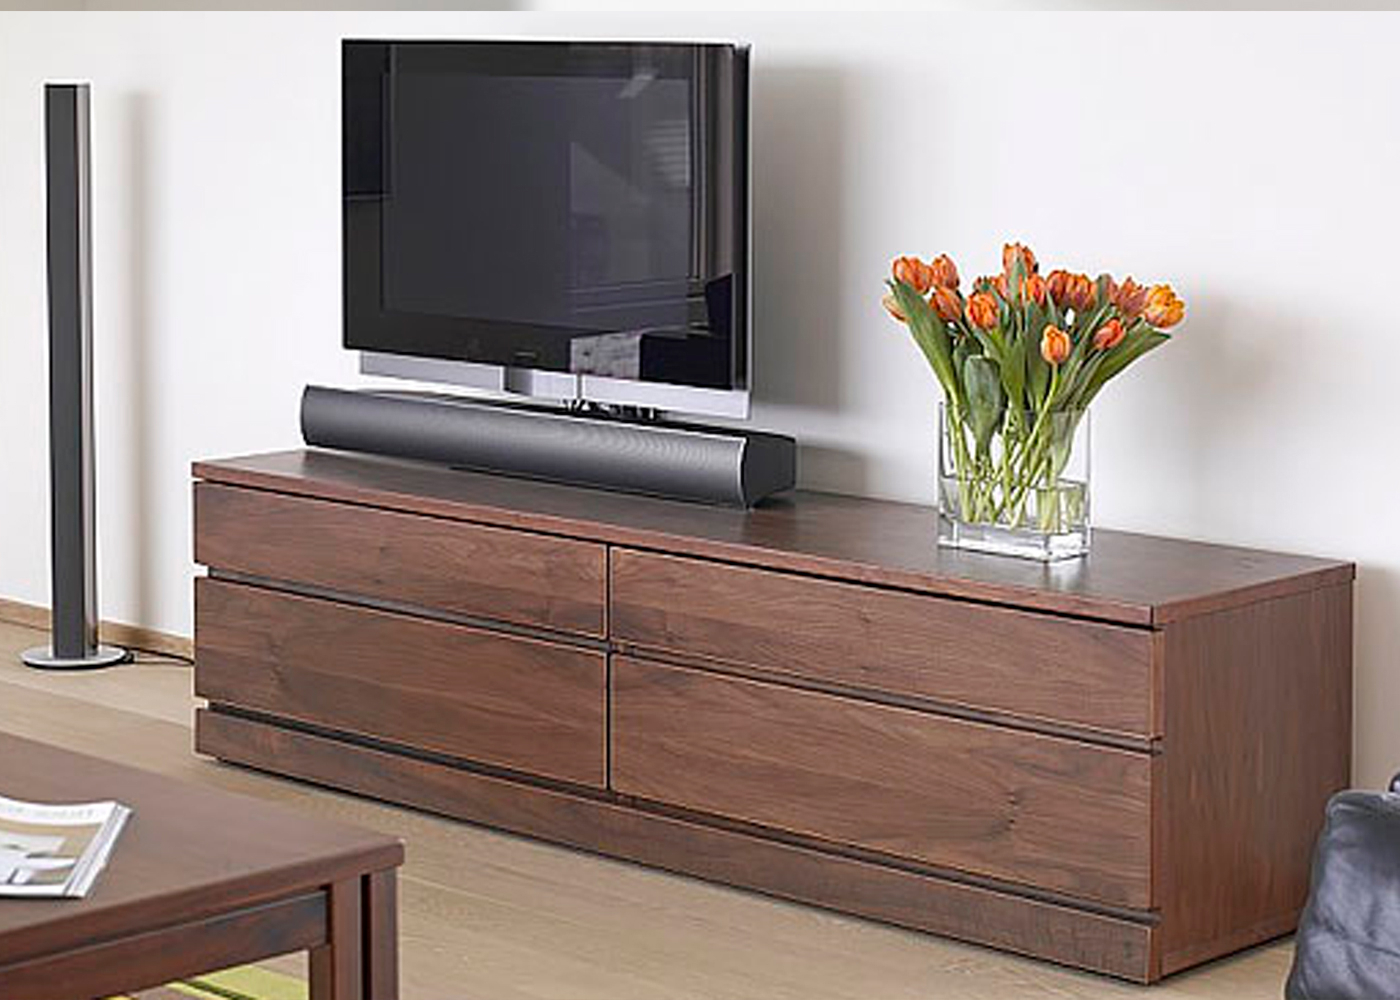 Latest Skovby Sm87 Tv Cabinet In Walnut Finish 1 – Midfurn Furniture Superstore Intended For Walnut Tv Cabinets With Doors (View 13 of 20)